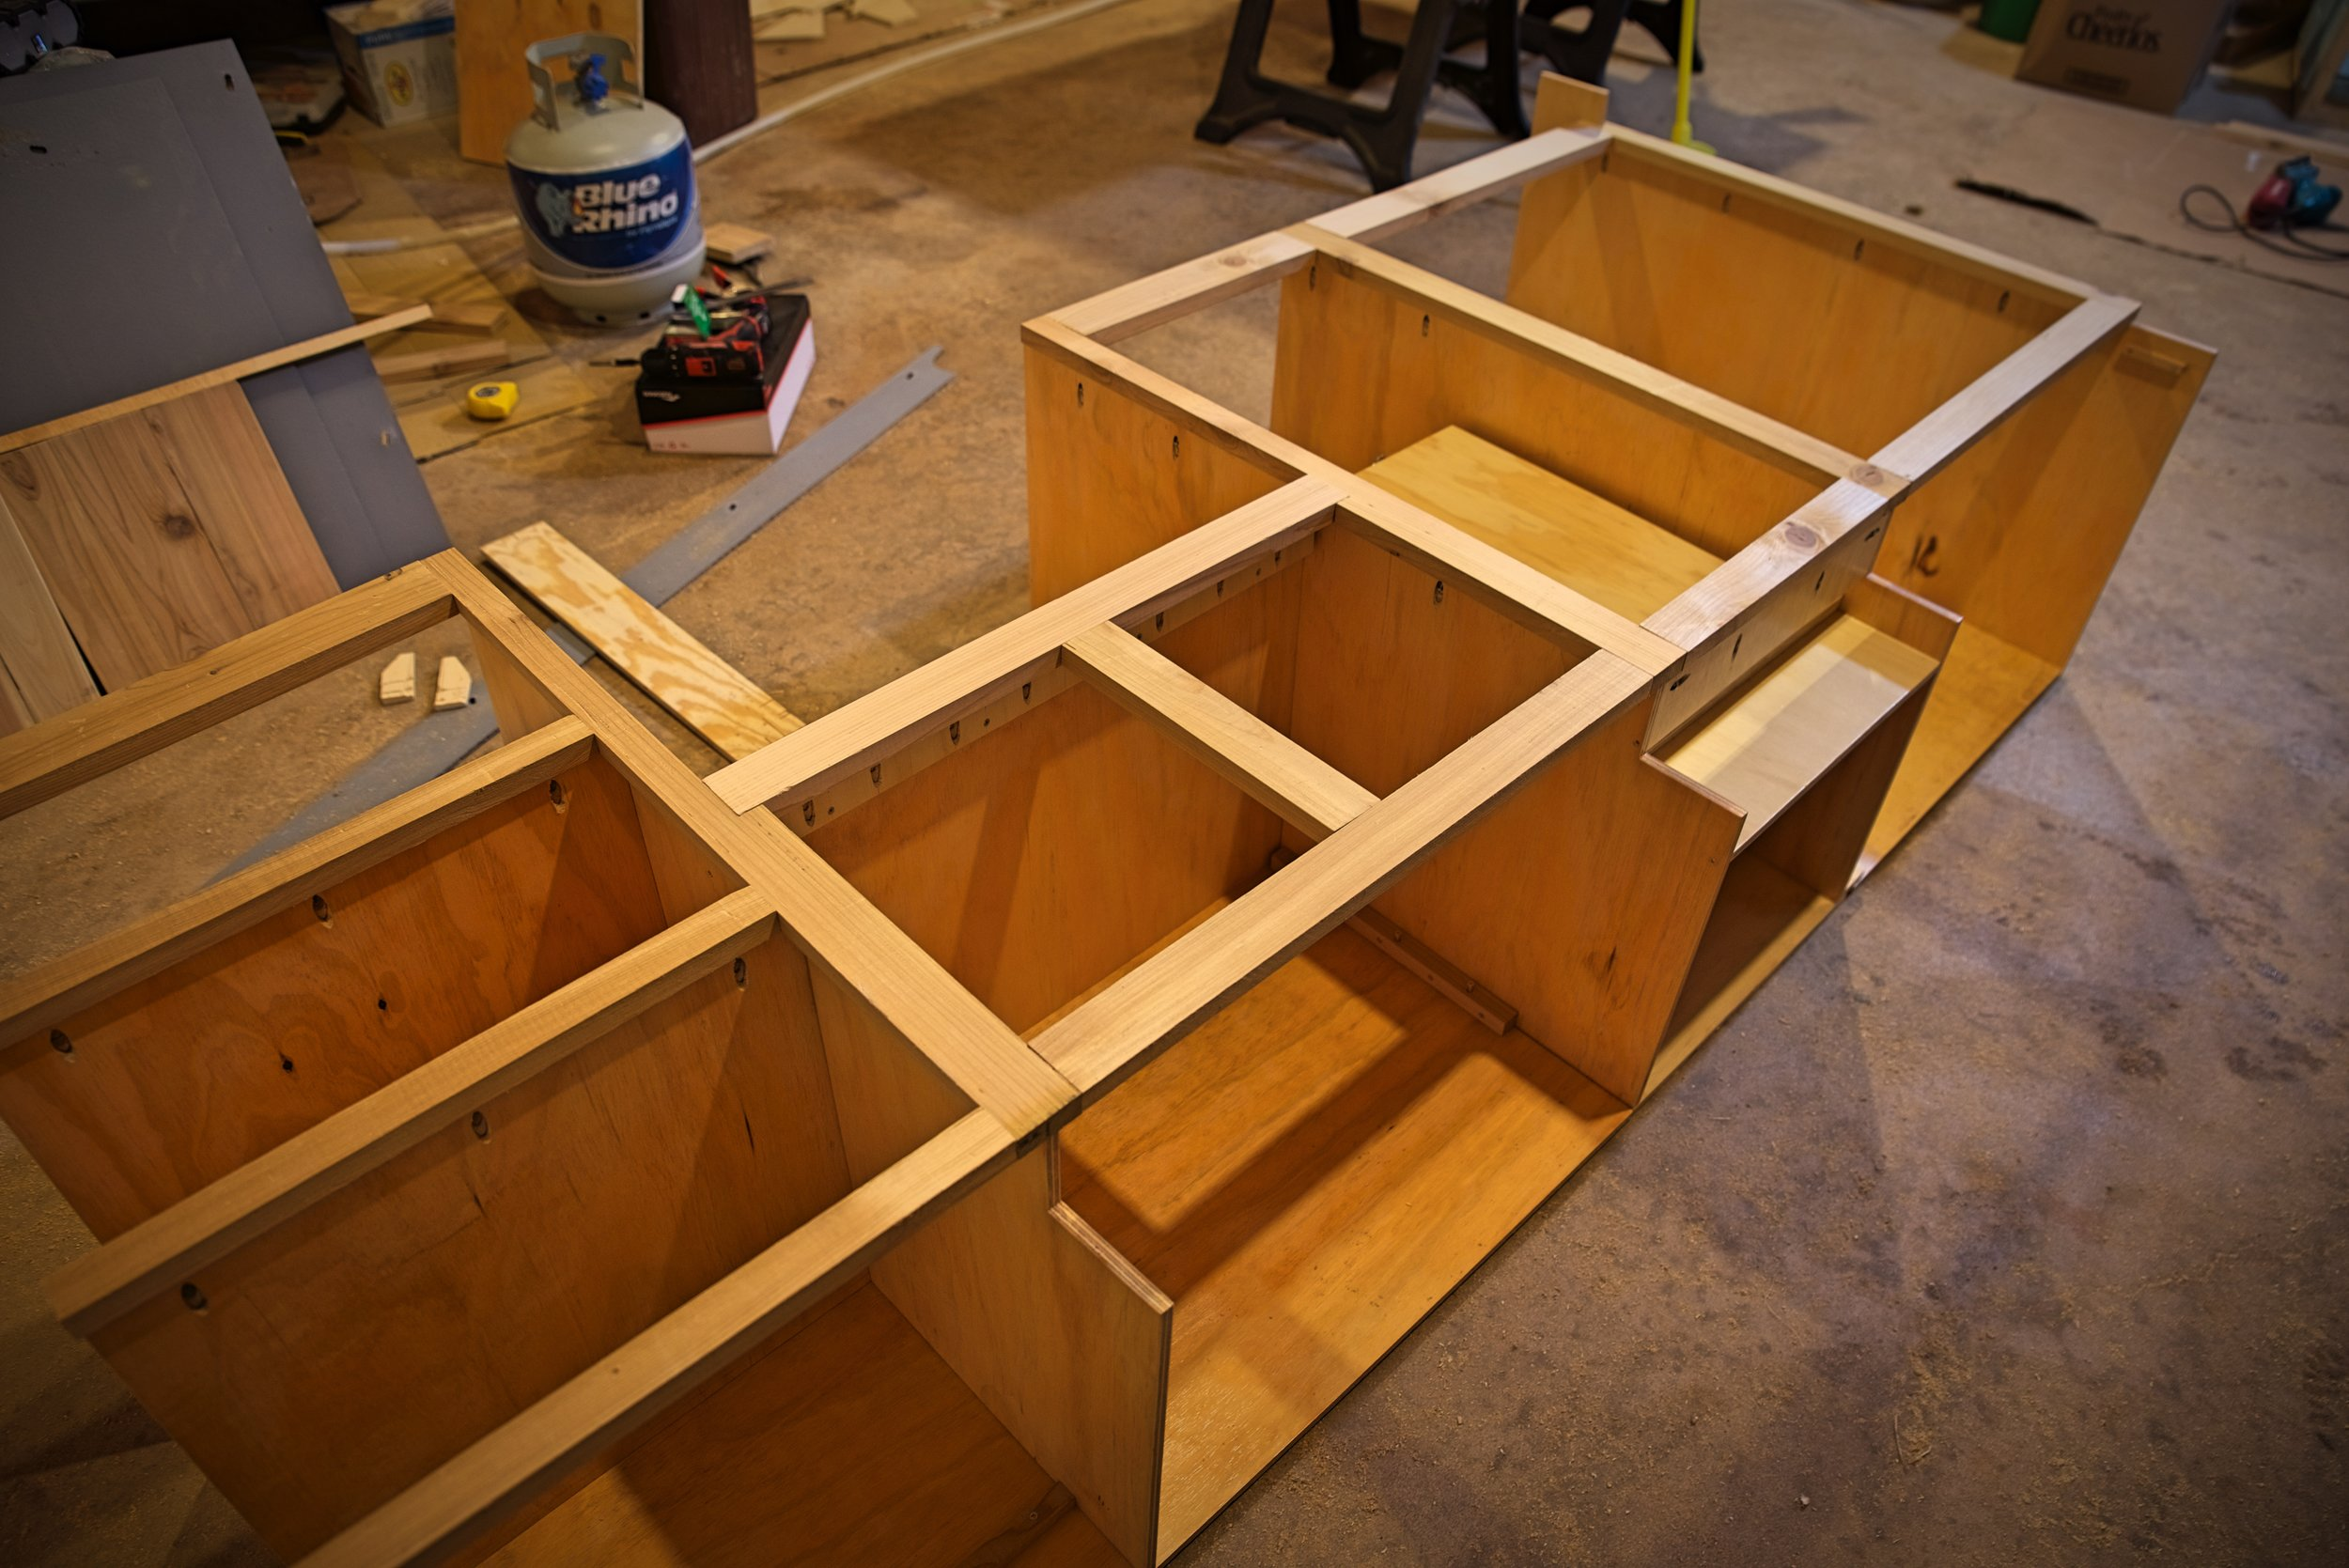 Eventually the frame would be joined to the cabinet cases using the pre-drilled pocket holes you can see all over this photo.